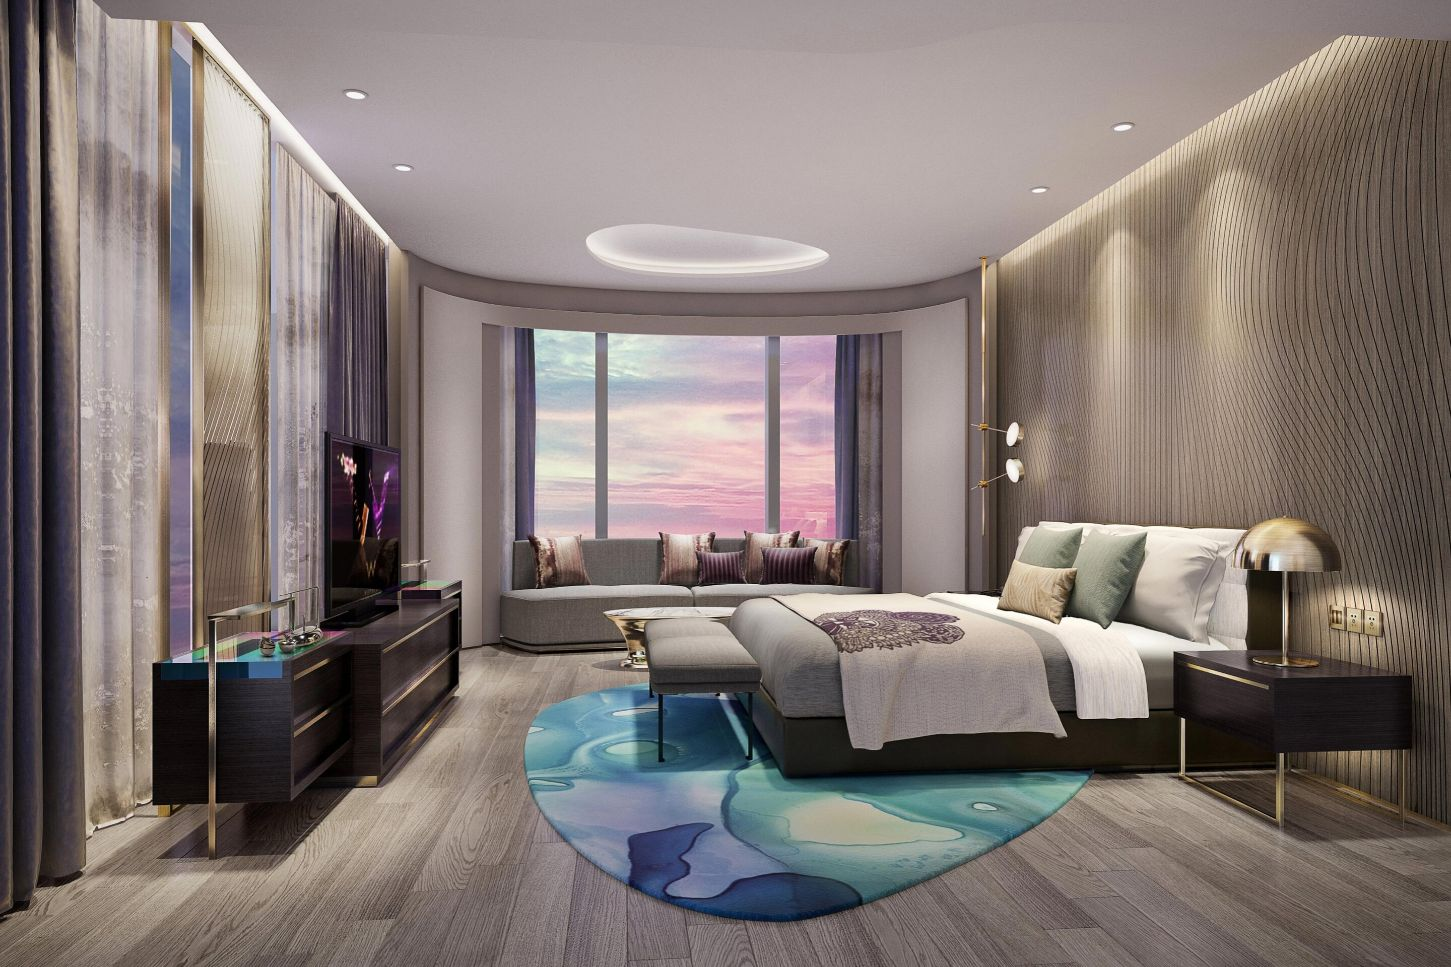 WOW King Suite at W Chengdu, China